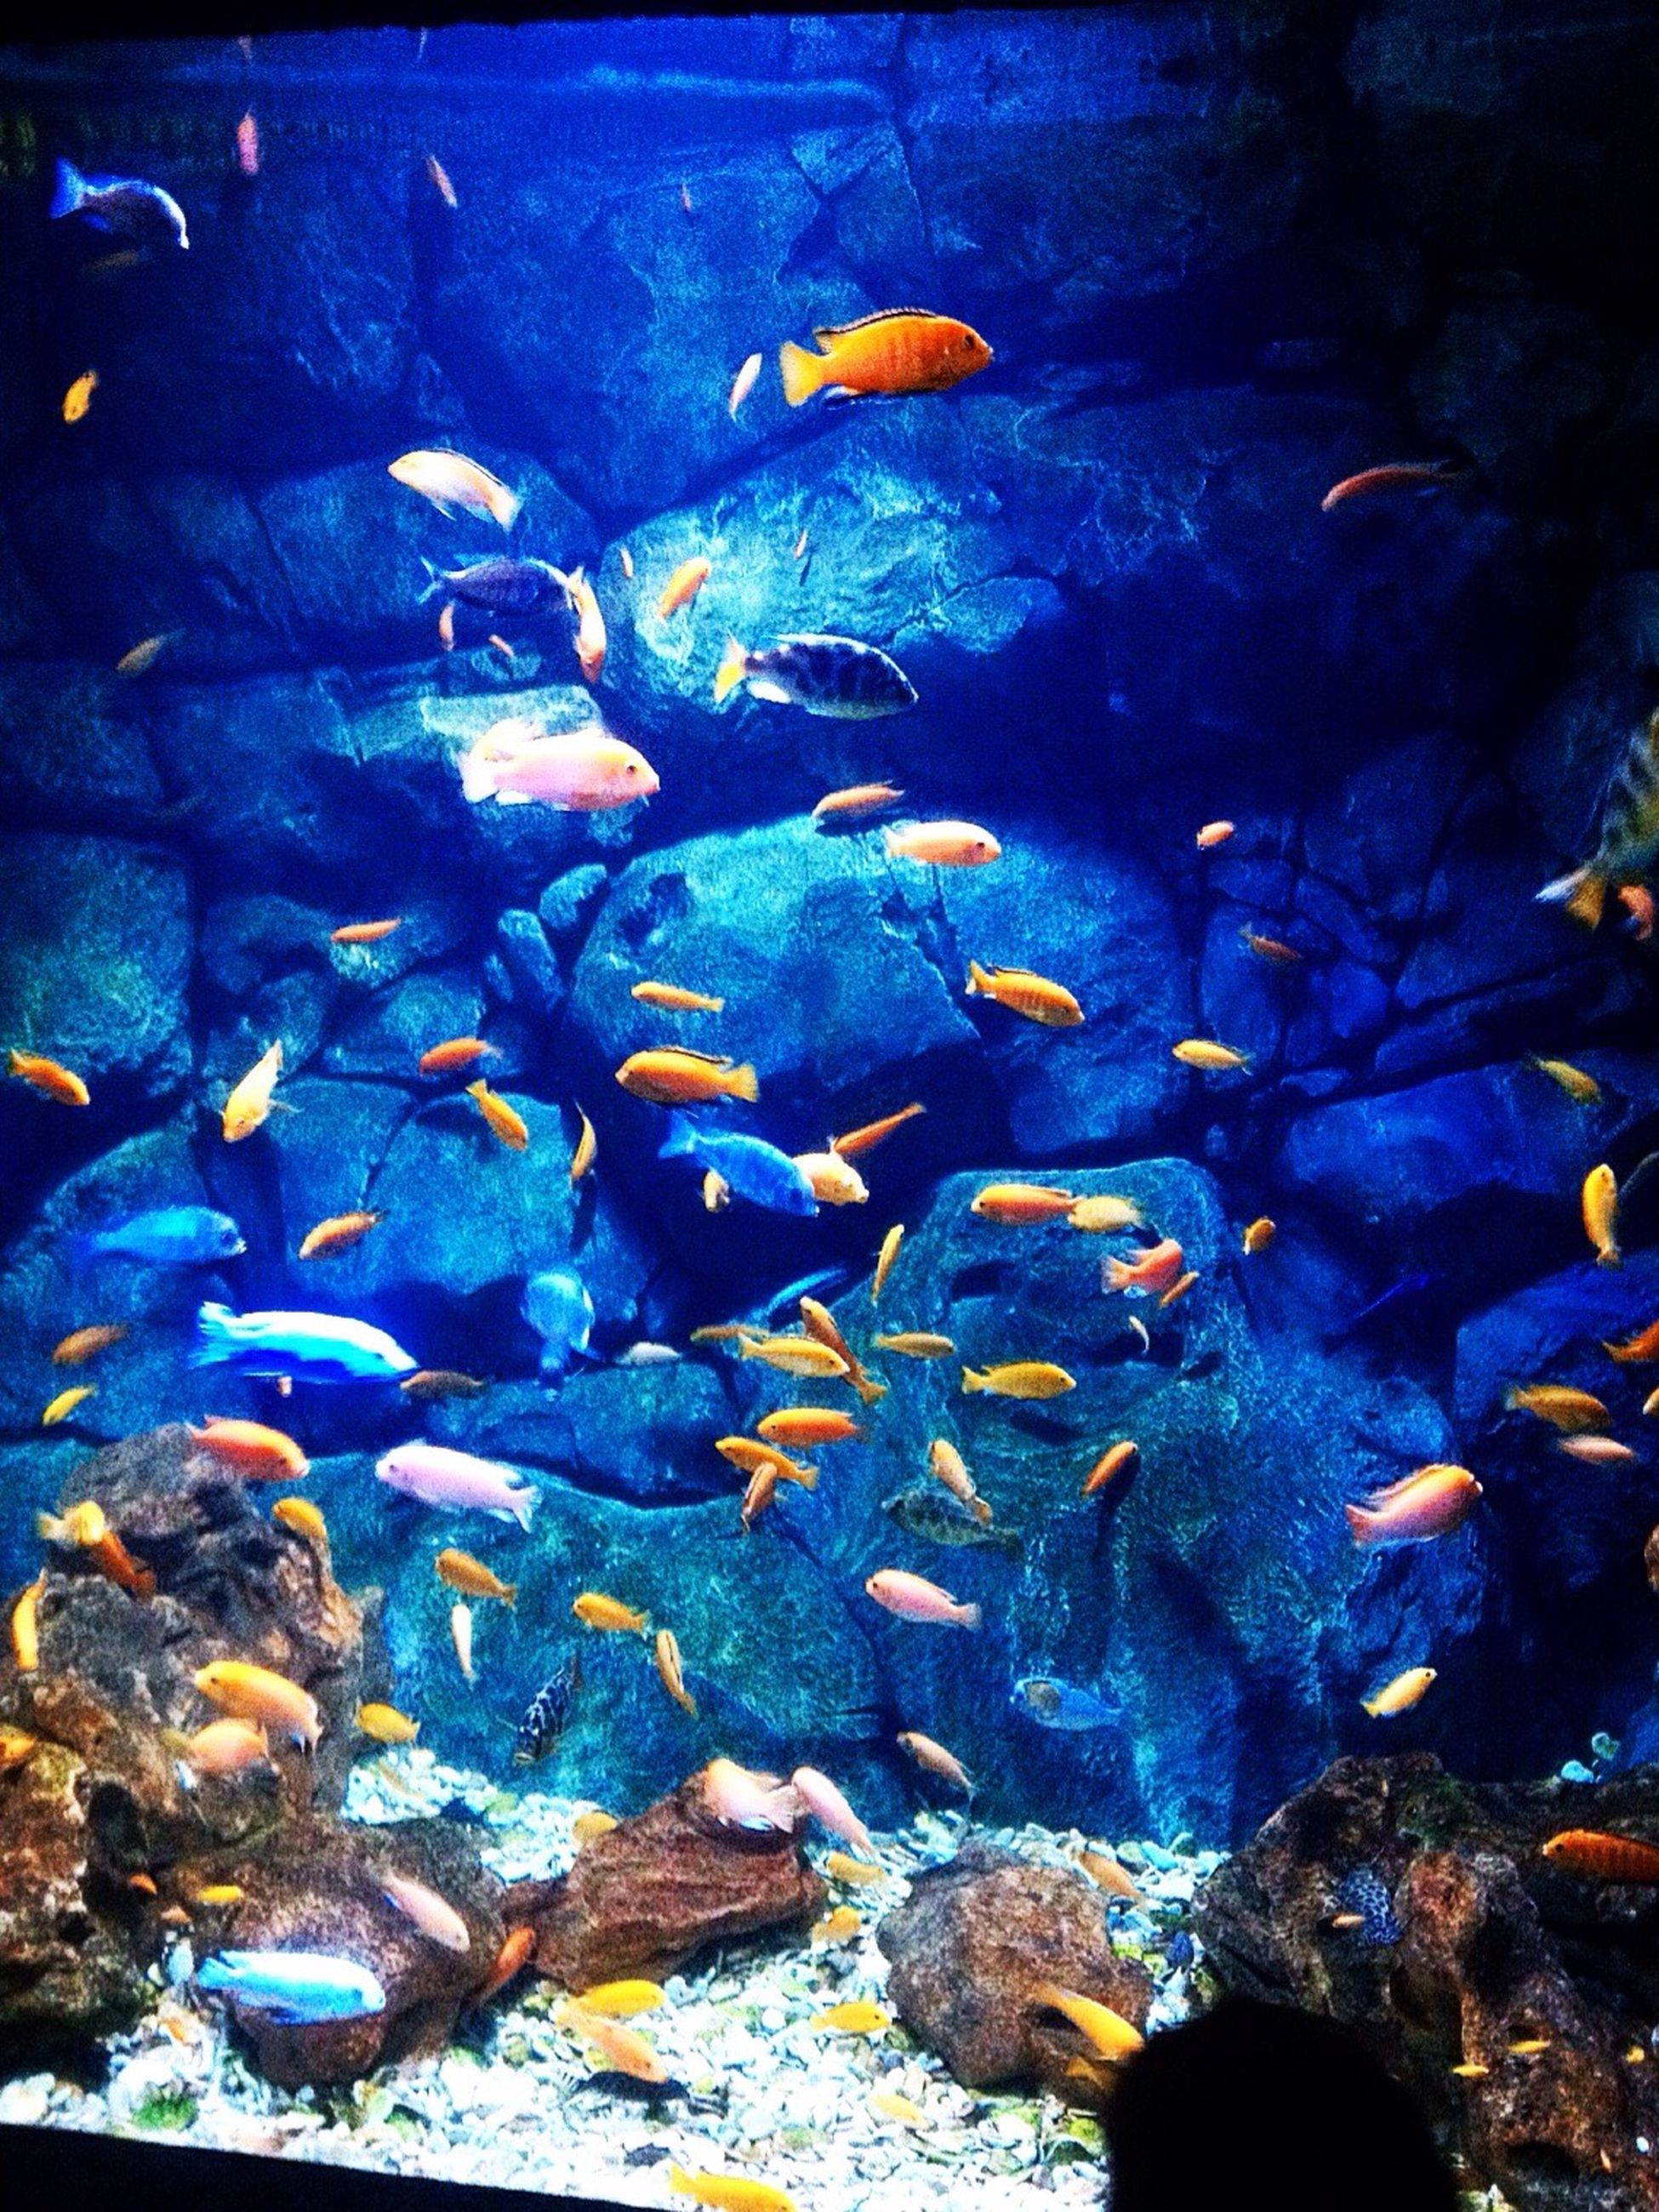 underwater, animal themes, water, sea life, swimming, fish, animals in the wild, wildlife, undersea, school of fish, rock - object, sea, aquarium, nature, blue, high angle view, coral, beauty in nature, stone - object